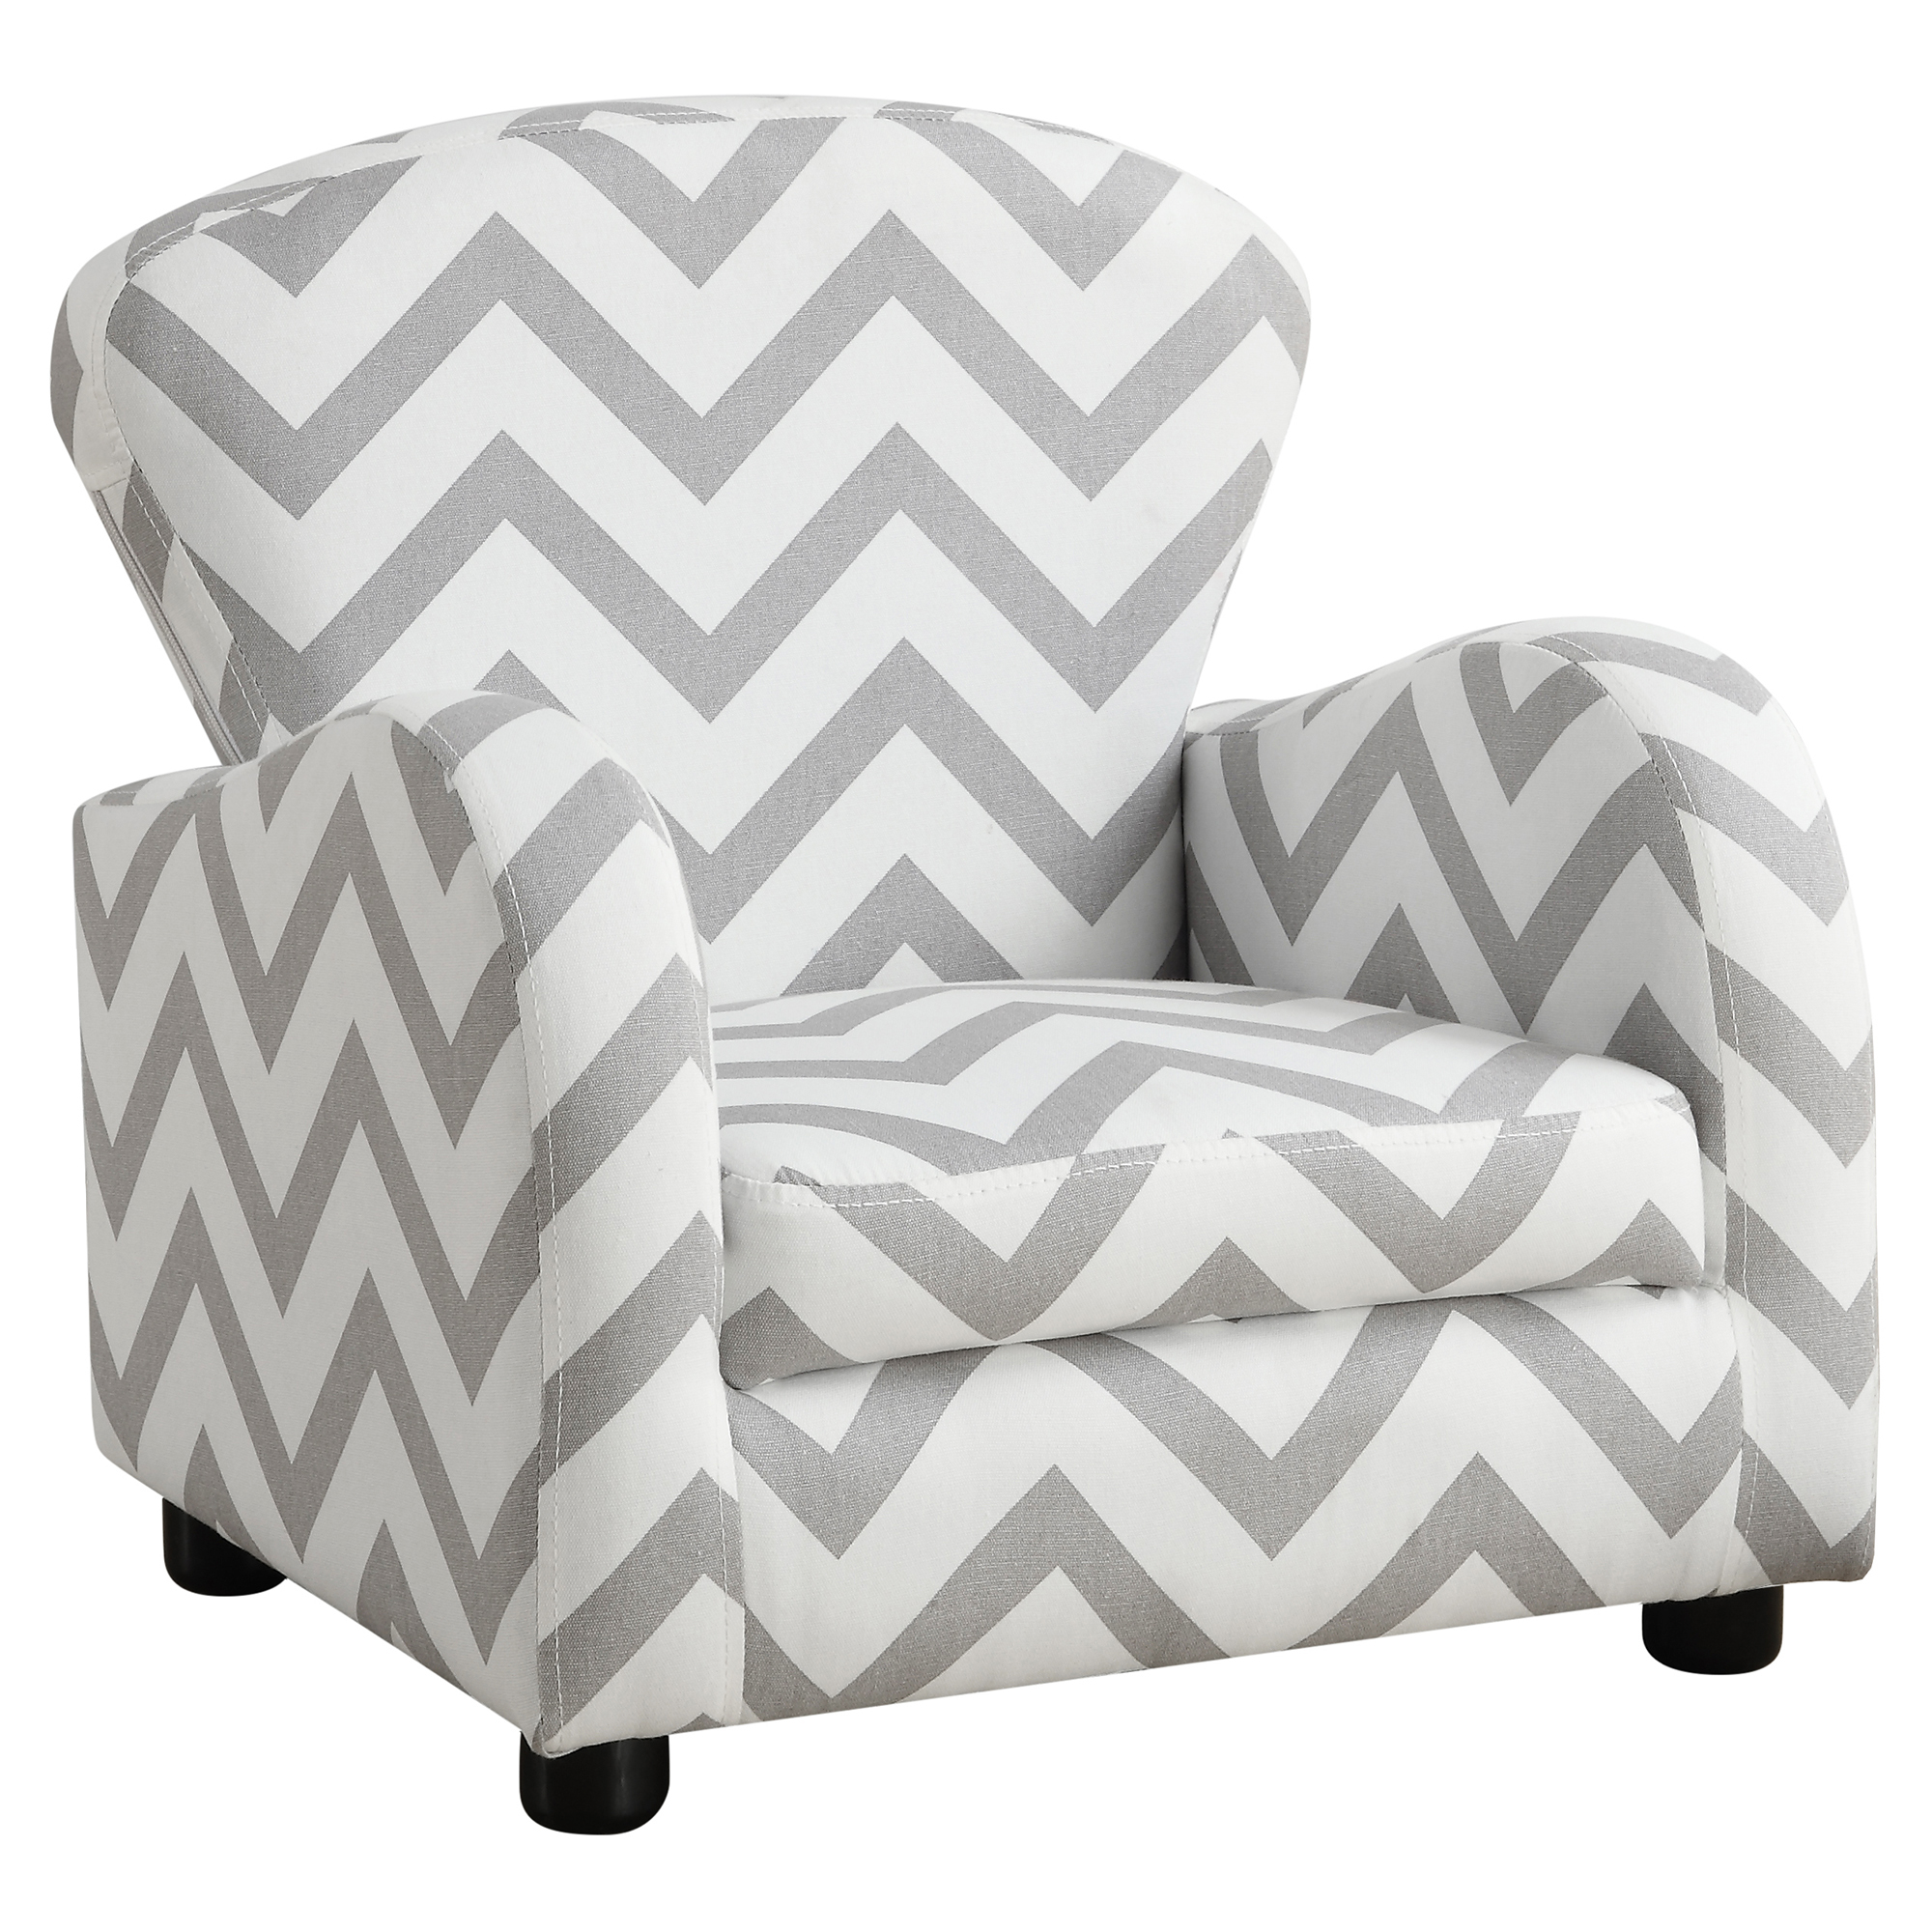 JUVENILE CHAIR - GREY CHEVRON FABRIC